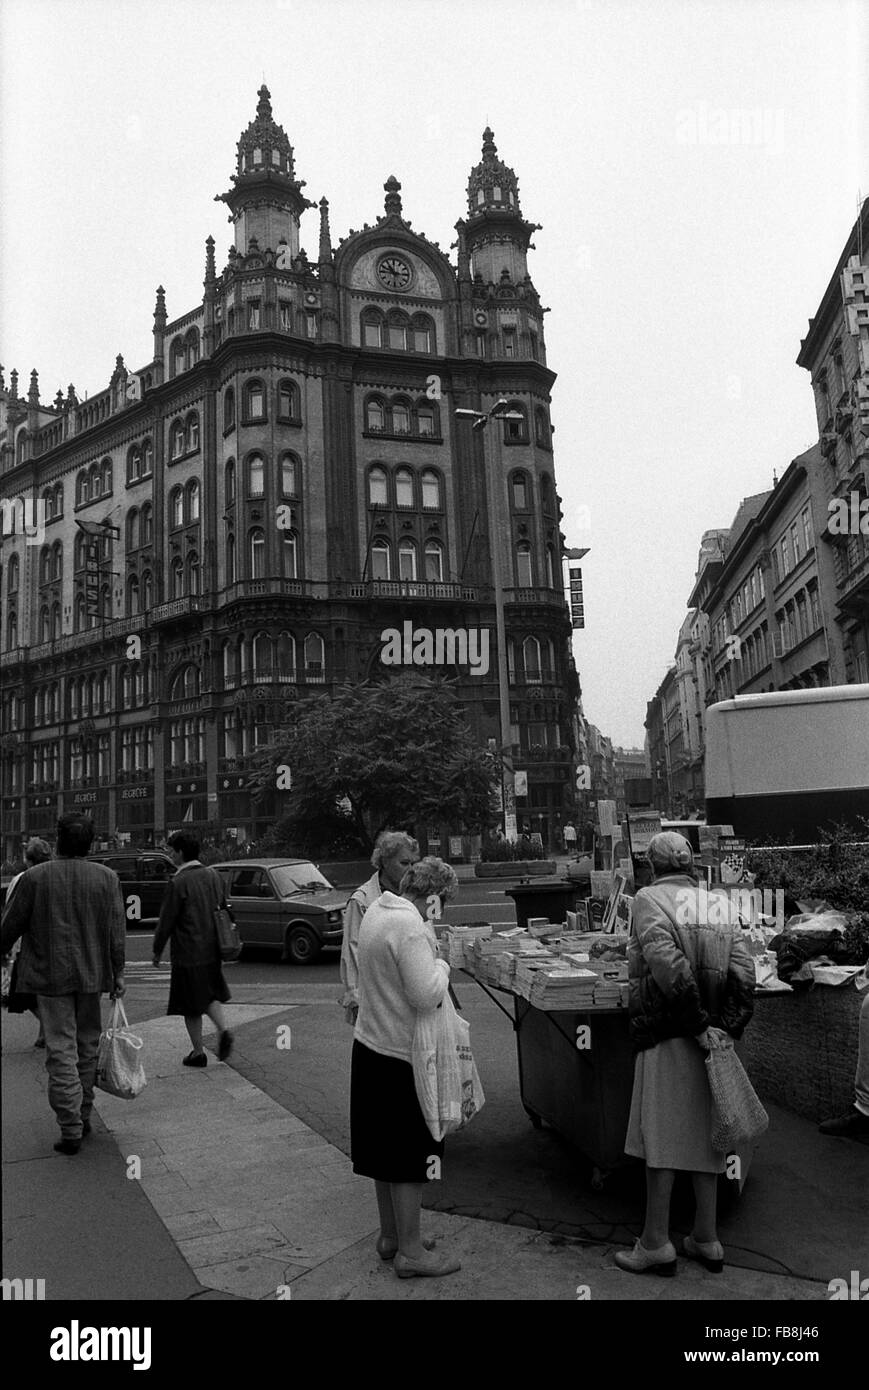 Glance on Bupapest at the time of the Nineties. -  1990  -  Hungary / Budapest  -  Glance on Bupapest at the time - Stock Image